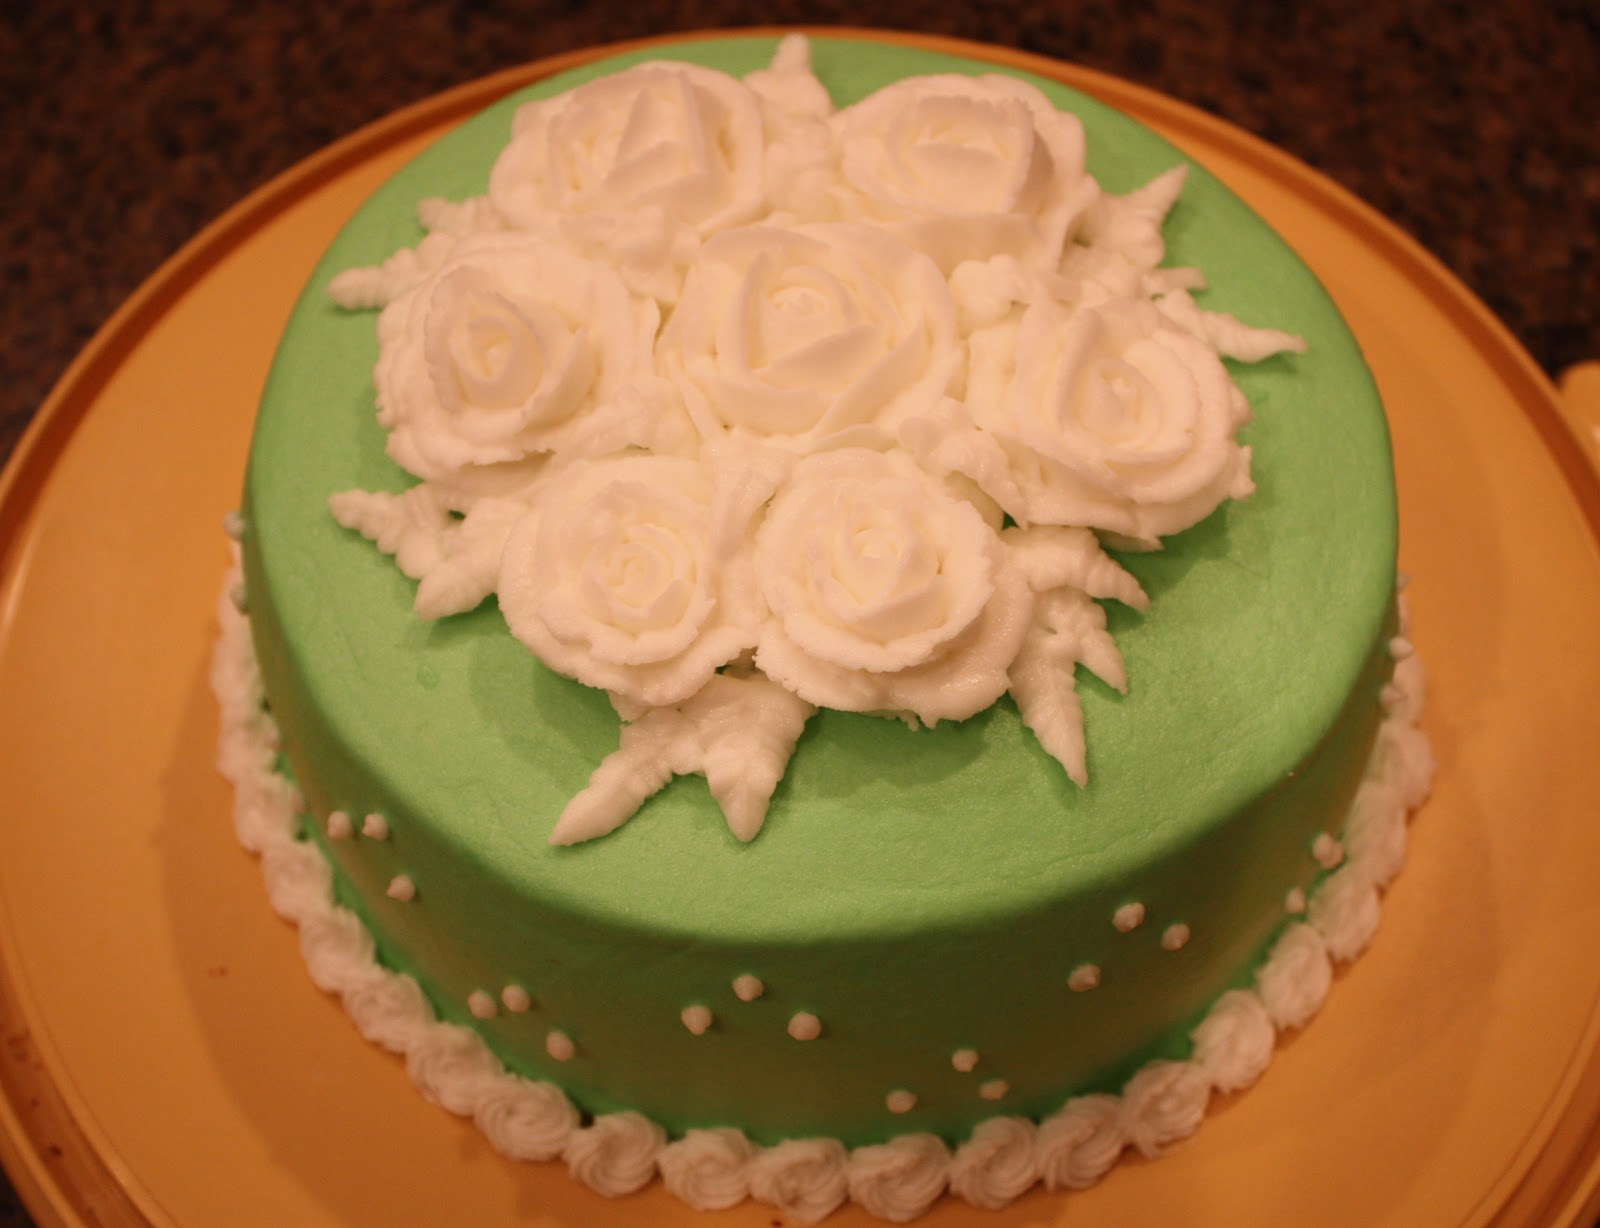 Cake Design Wilton : Crescent City Ramblings: Wilton Cake Decorating - Course 1 ...